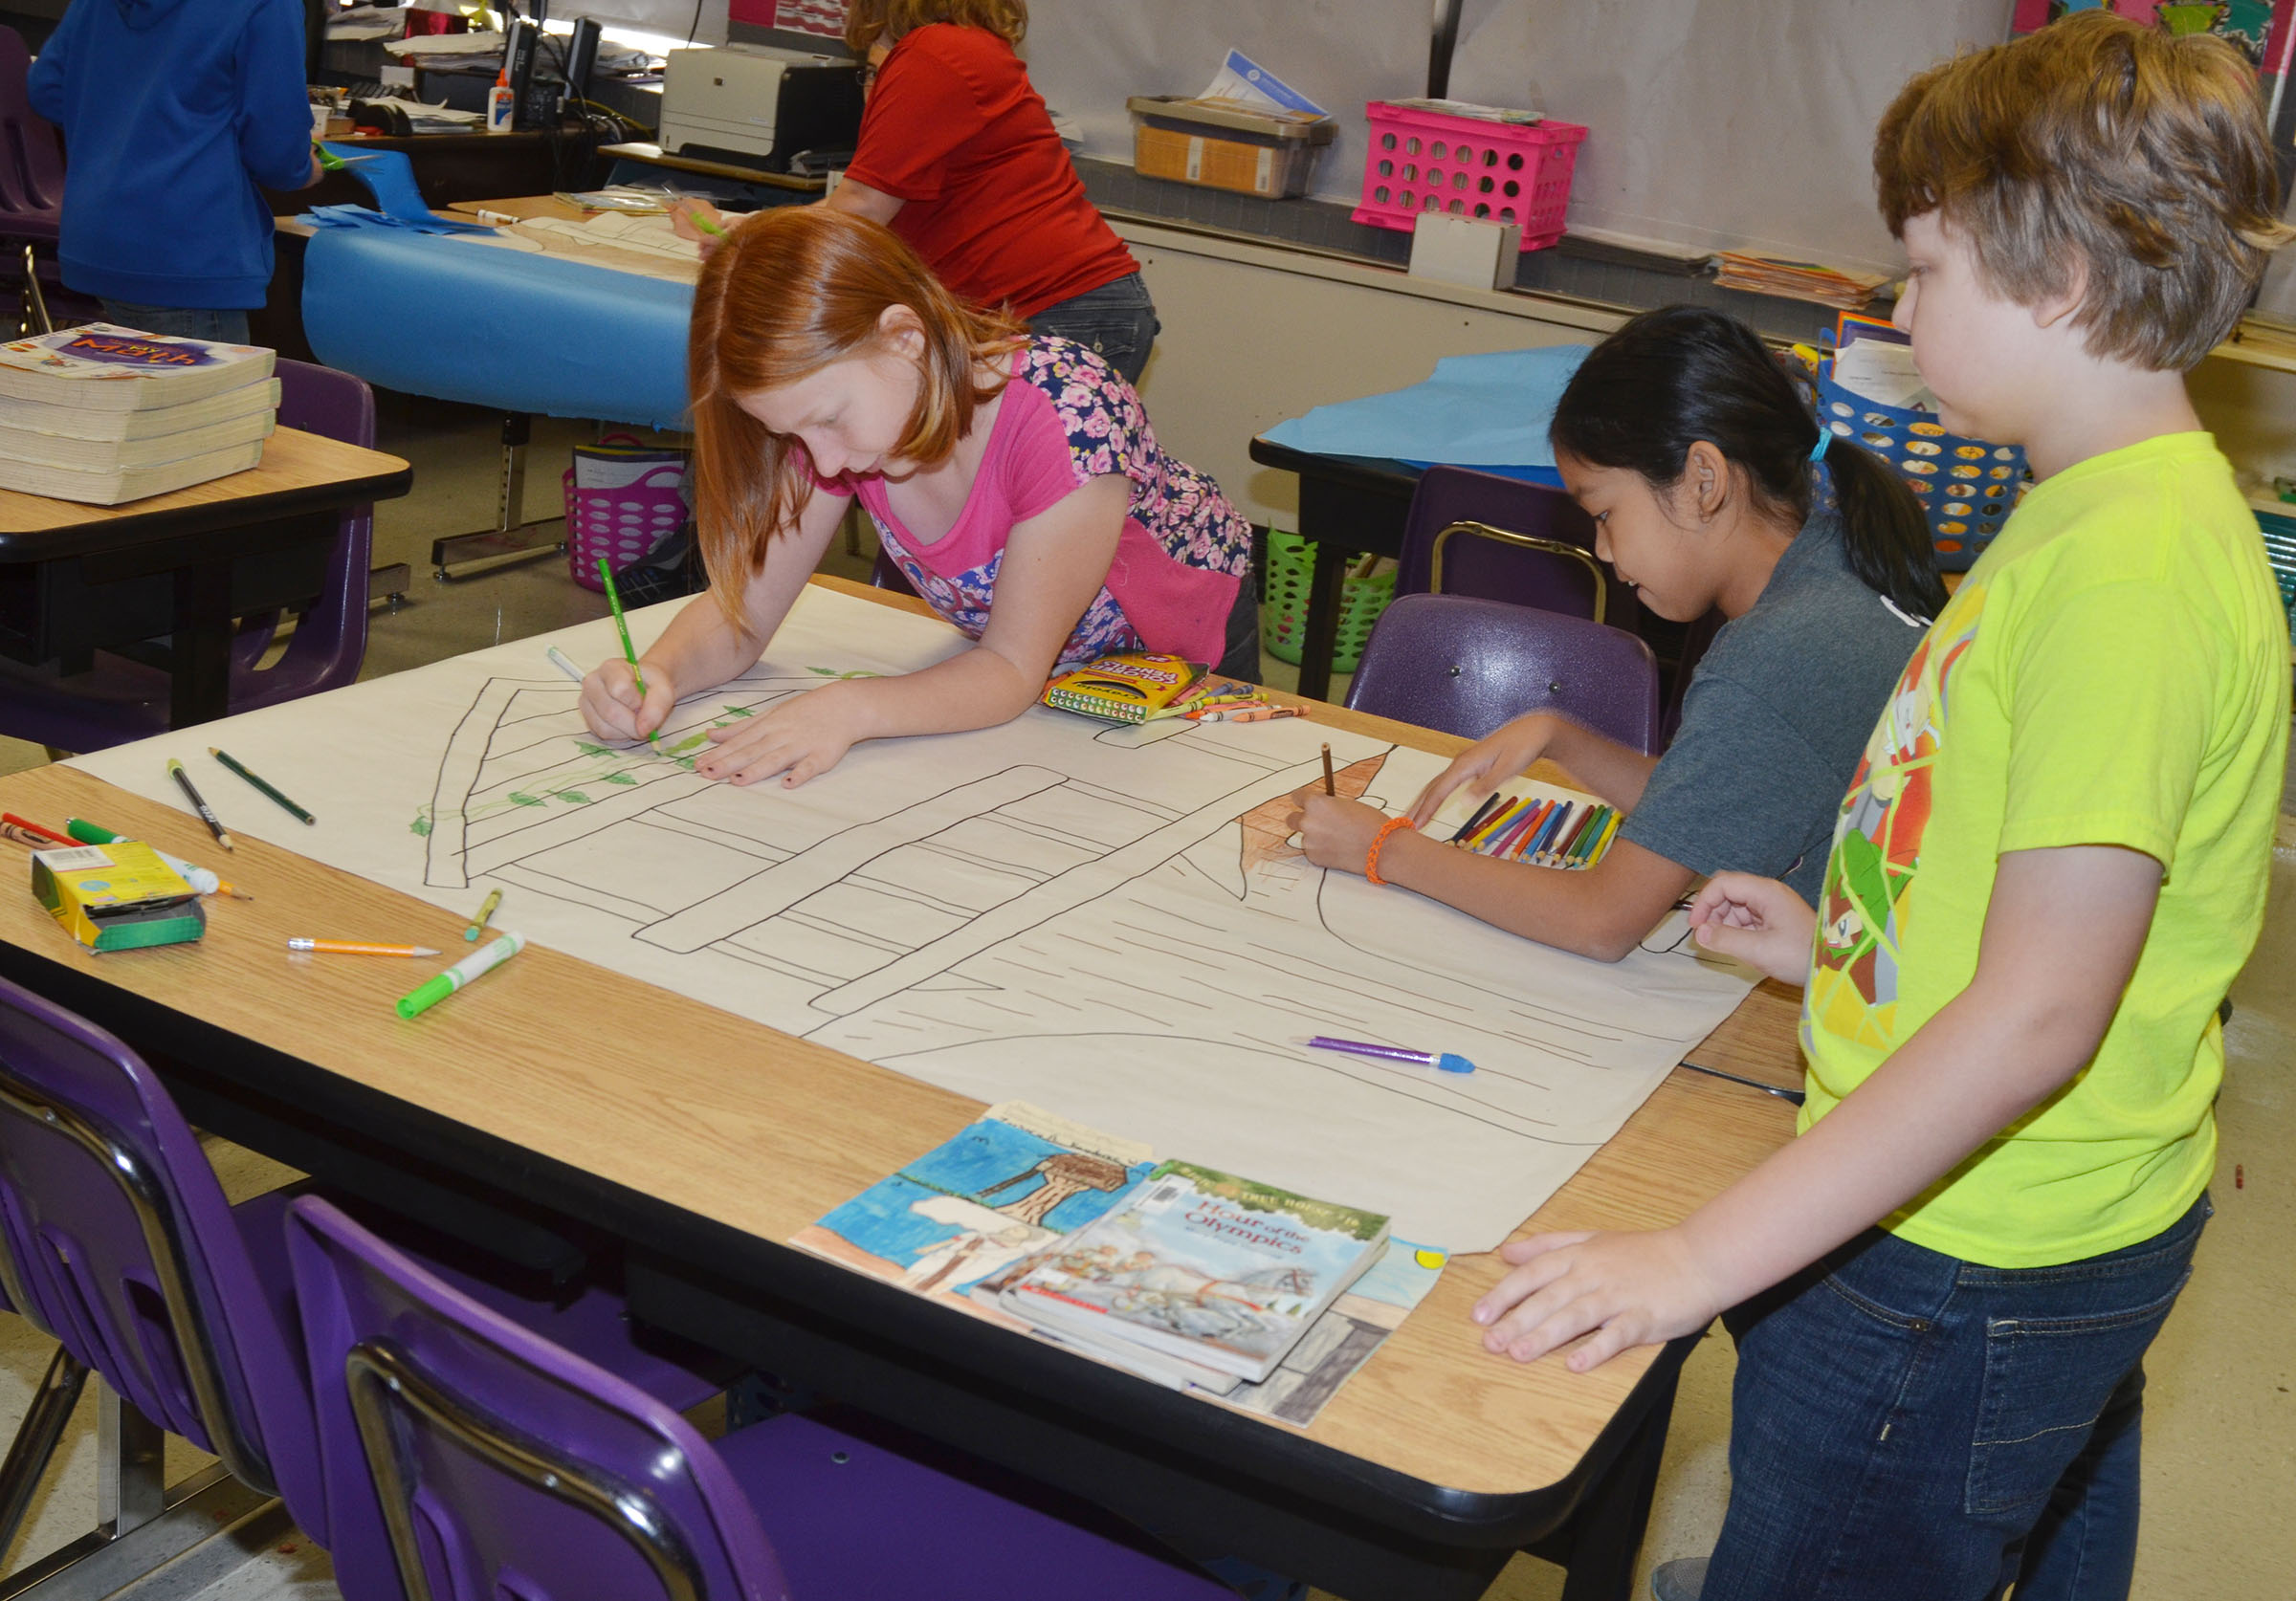 CMS fifth-graders, from left, Kaydence Wethington, Angelica Seng and Zachary Akin work on their treehouse project.